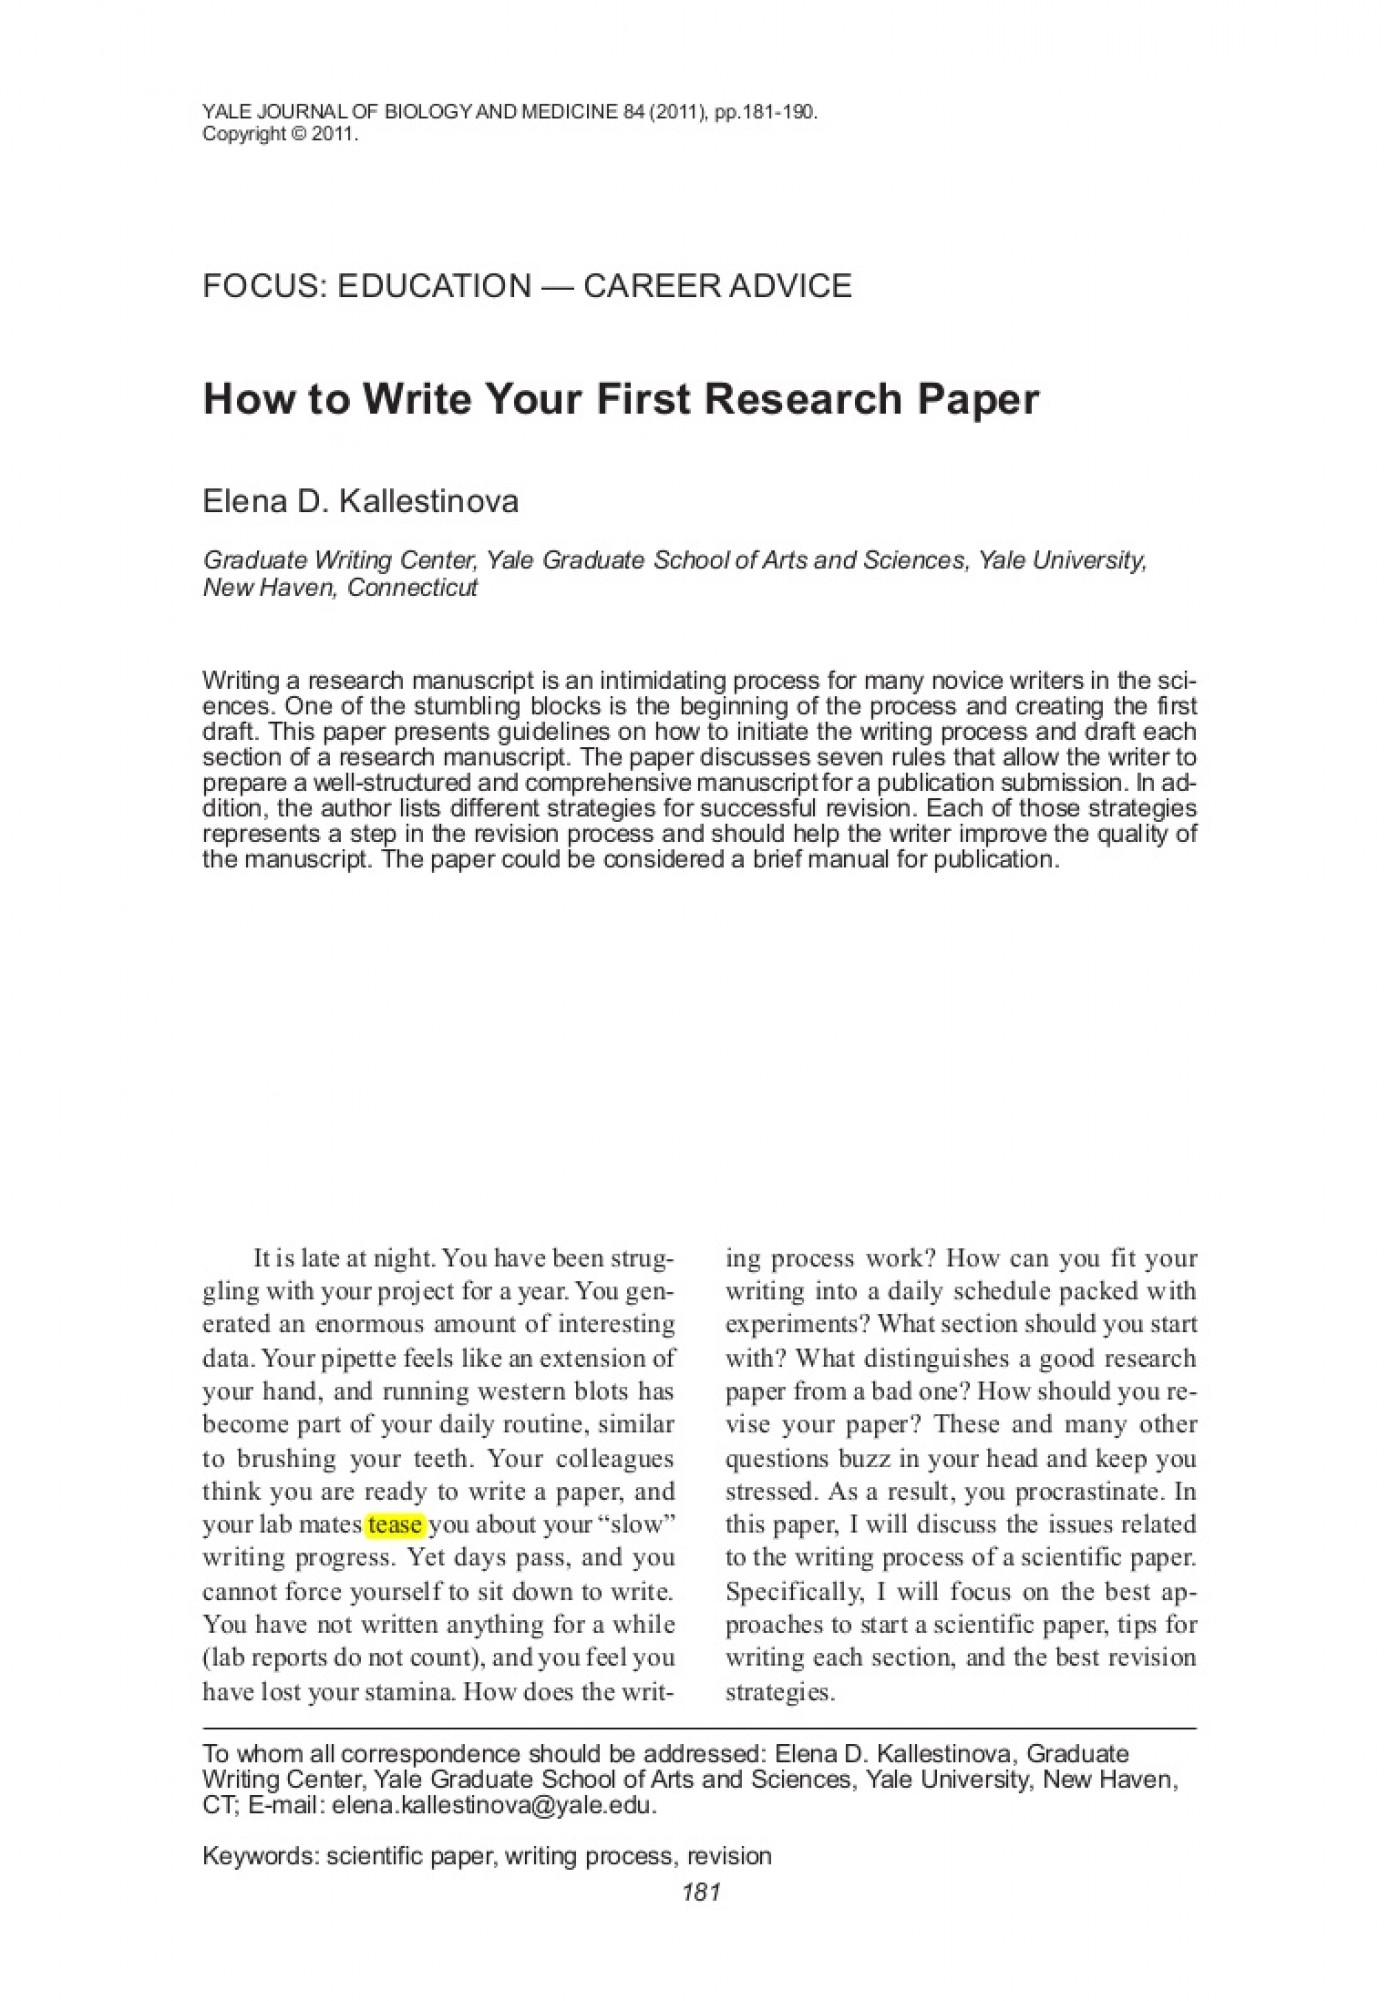 013 How To Write Research Papers Paper Howtowriteyourfirstresearchpaper Lva1 App6891 Thumbnail Best A History Introduction For International Conference In Computer Science Ppt 1400